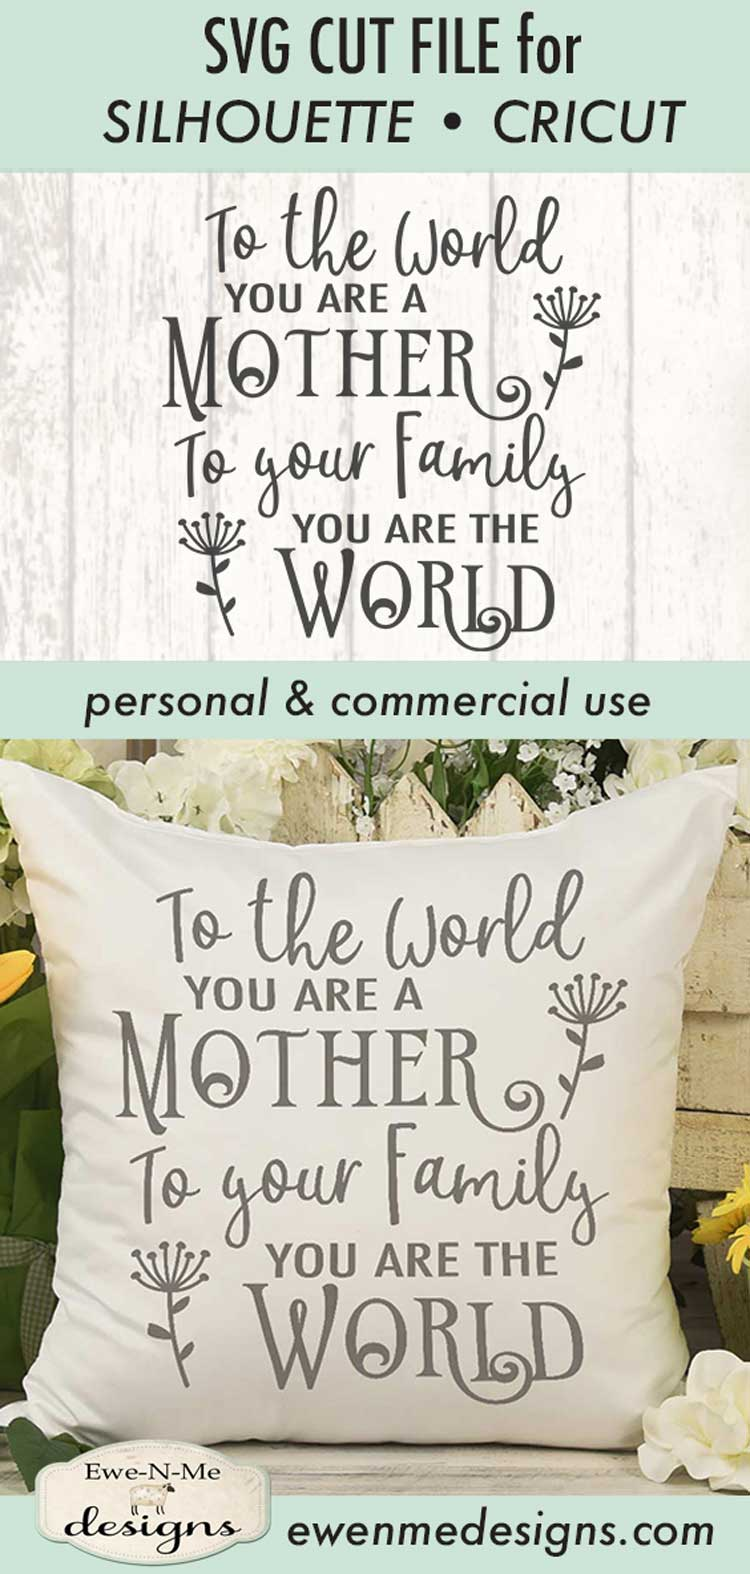 To The World You Are A Mother - Mother's Day - SVG DXF Files example image 3